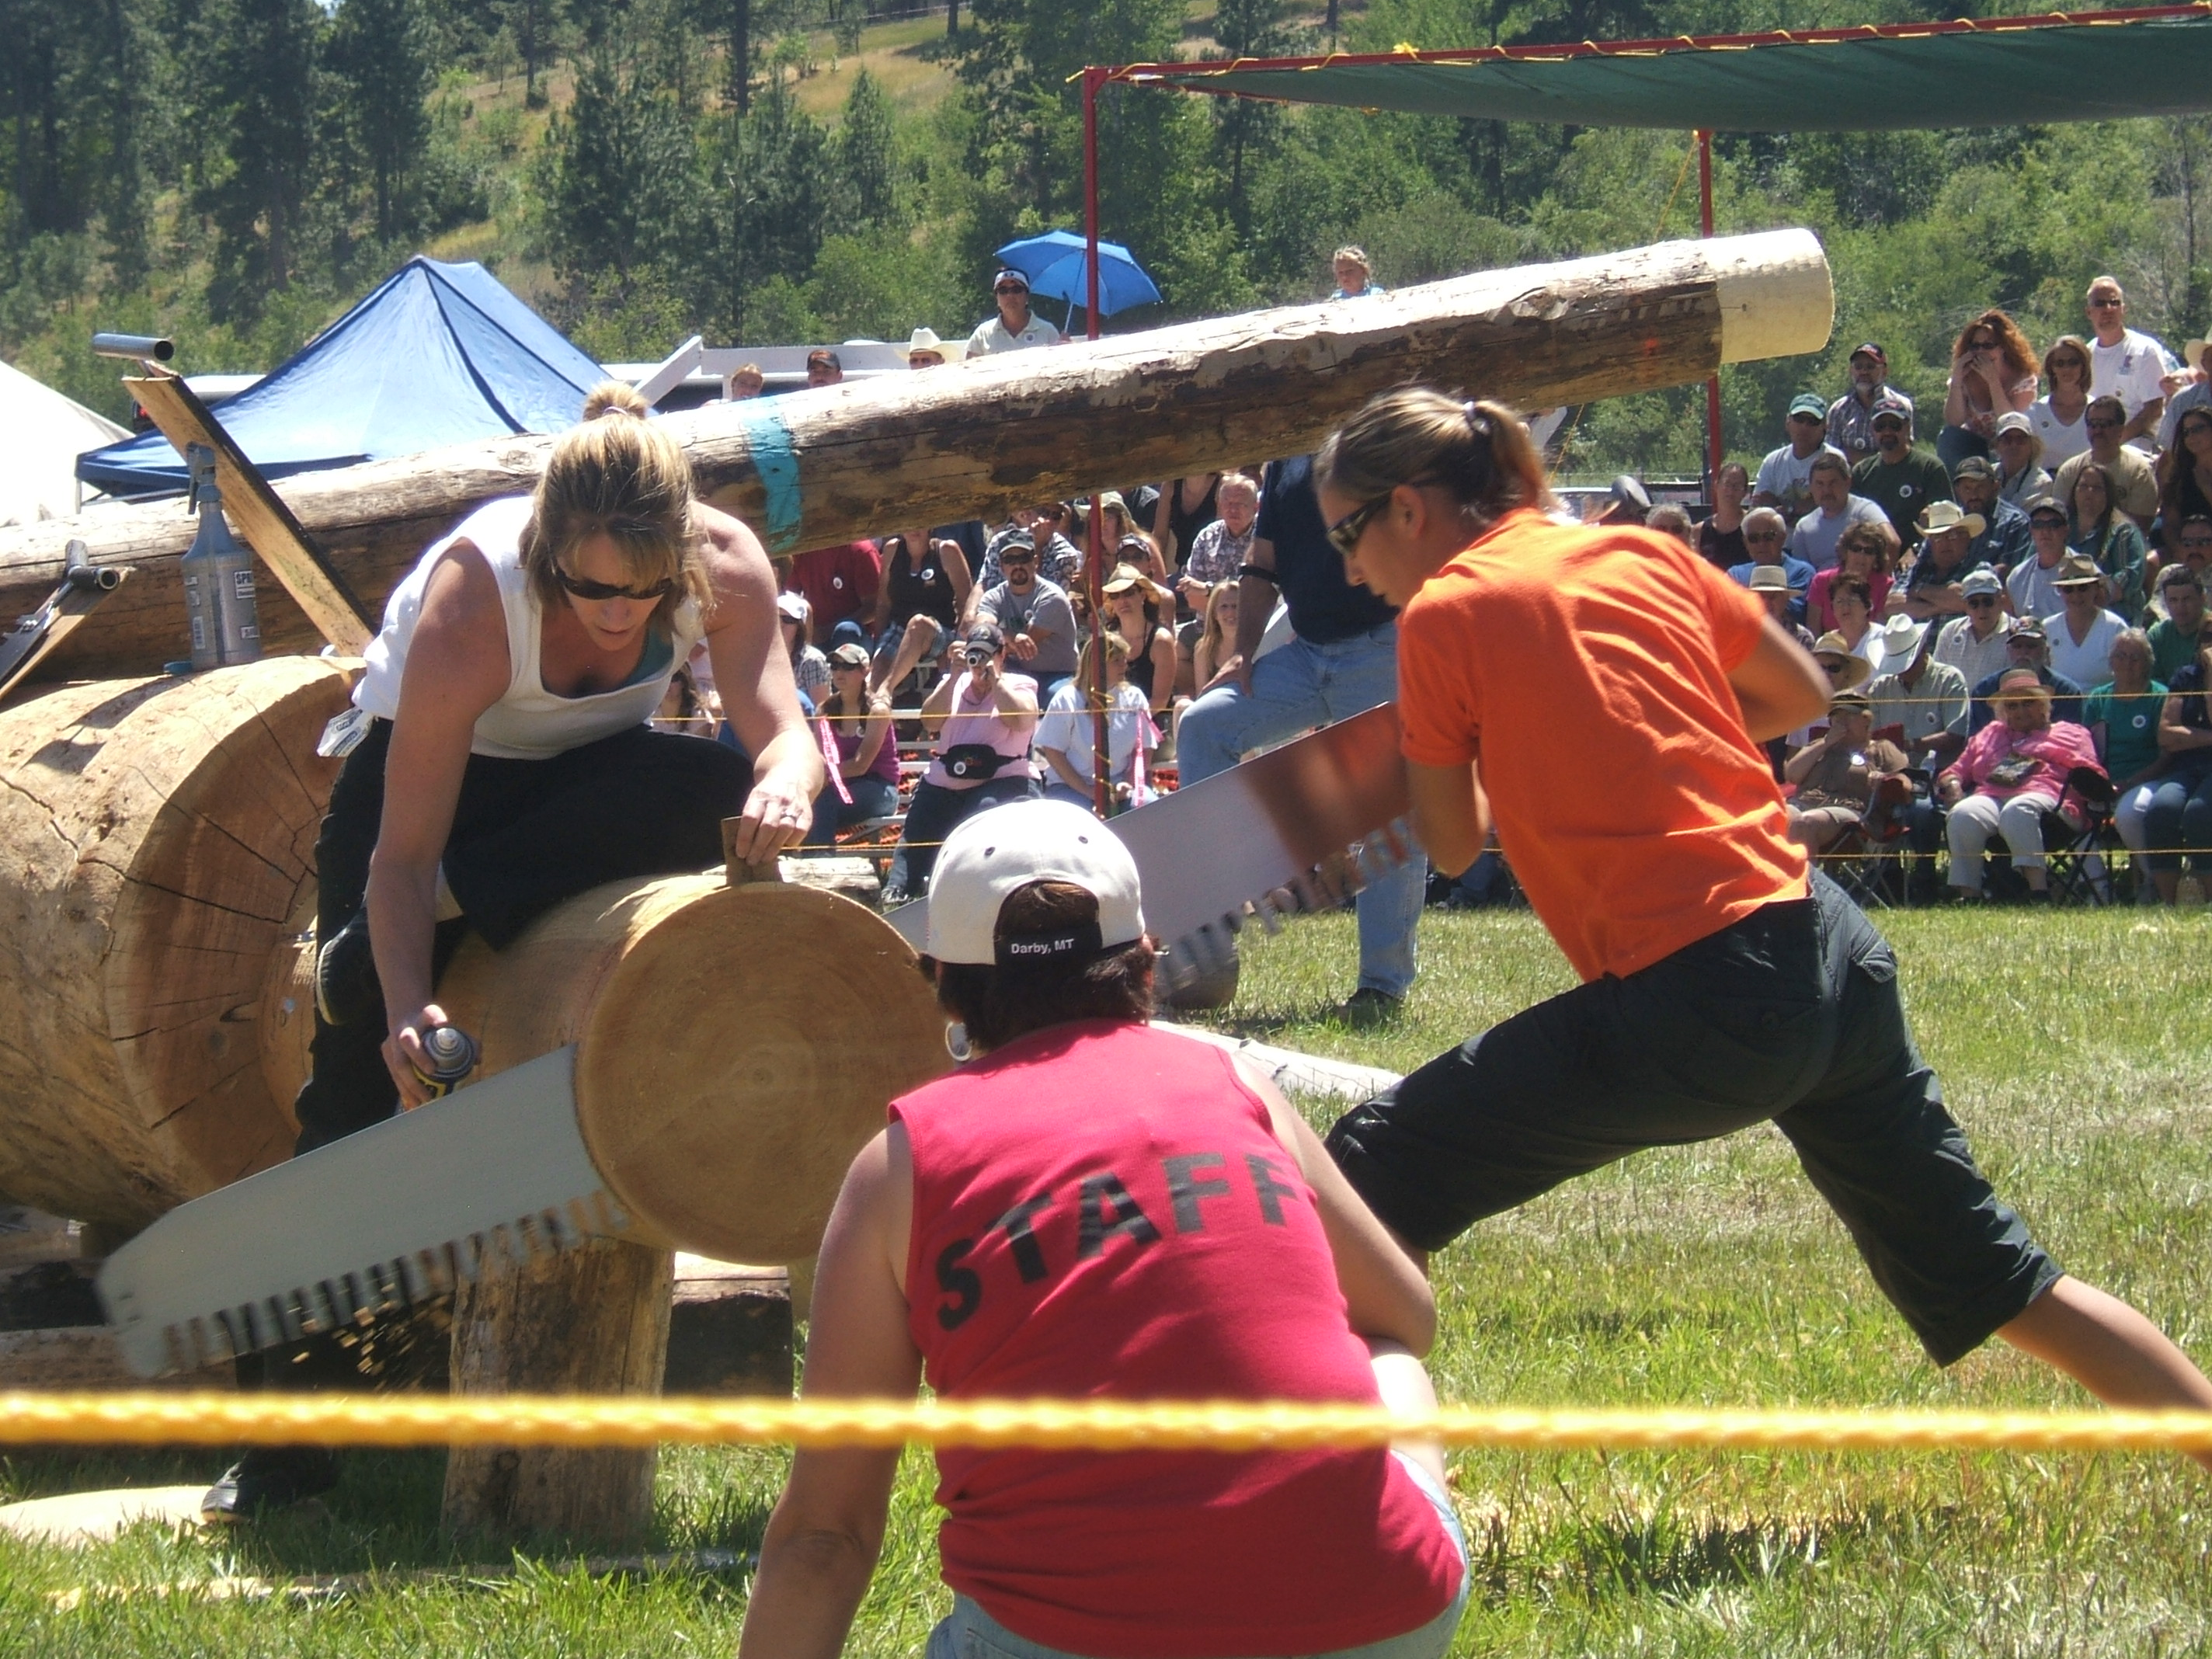 Women saw logs at Darby Logger Days